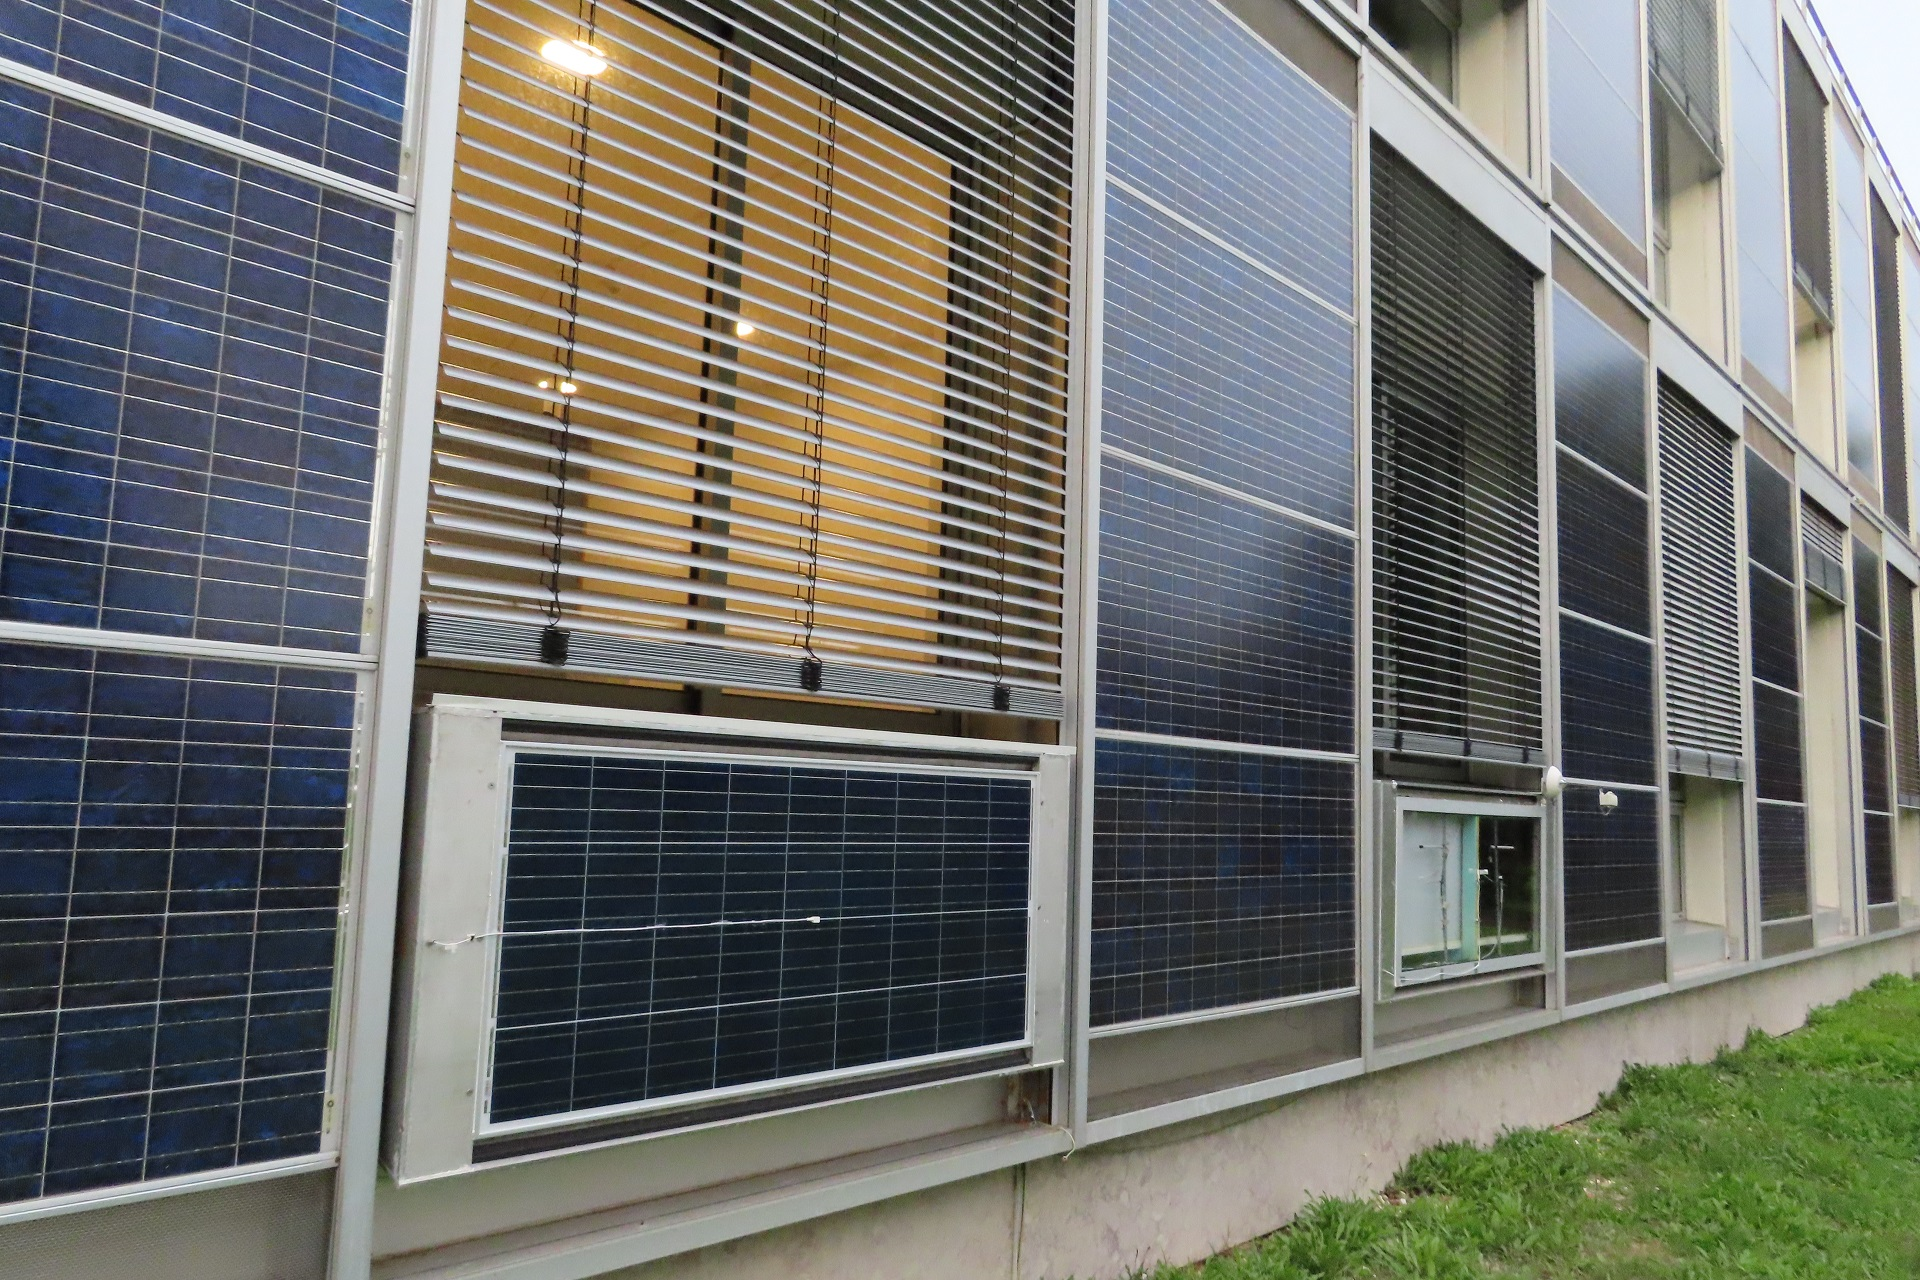 FIRST - Mapping flexibility of urban energy systems